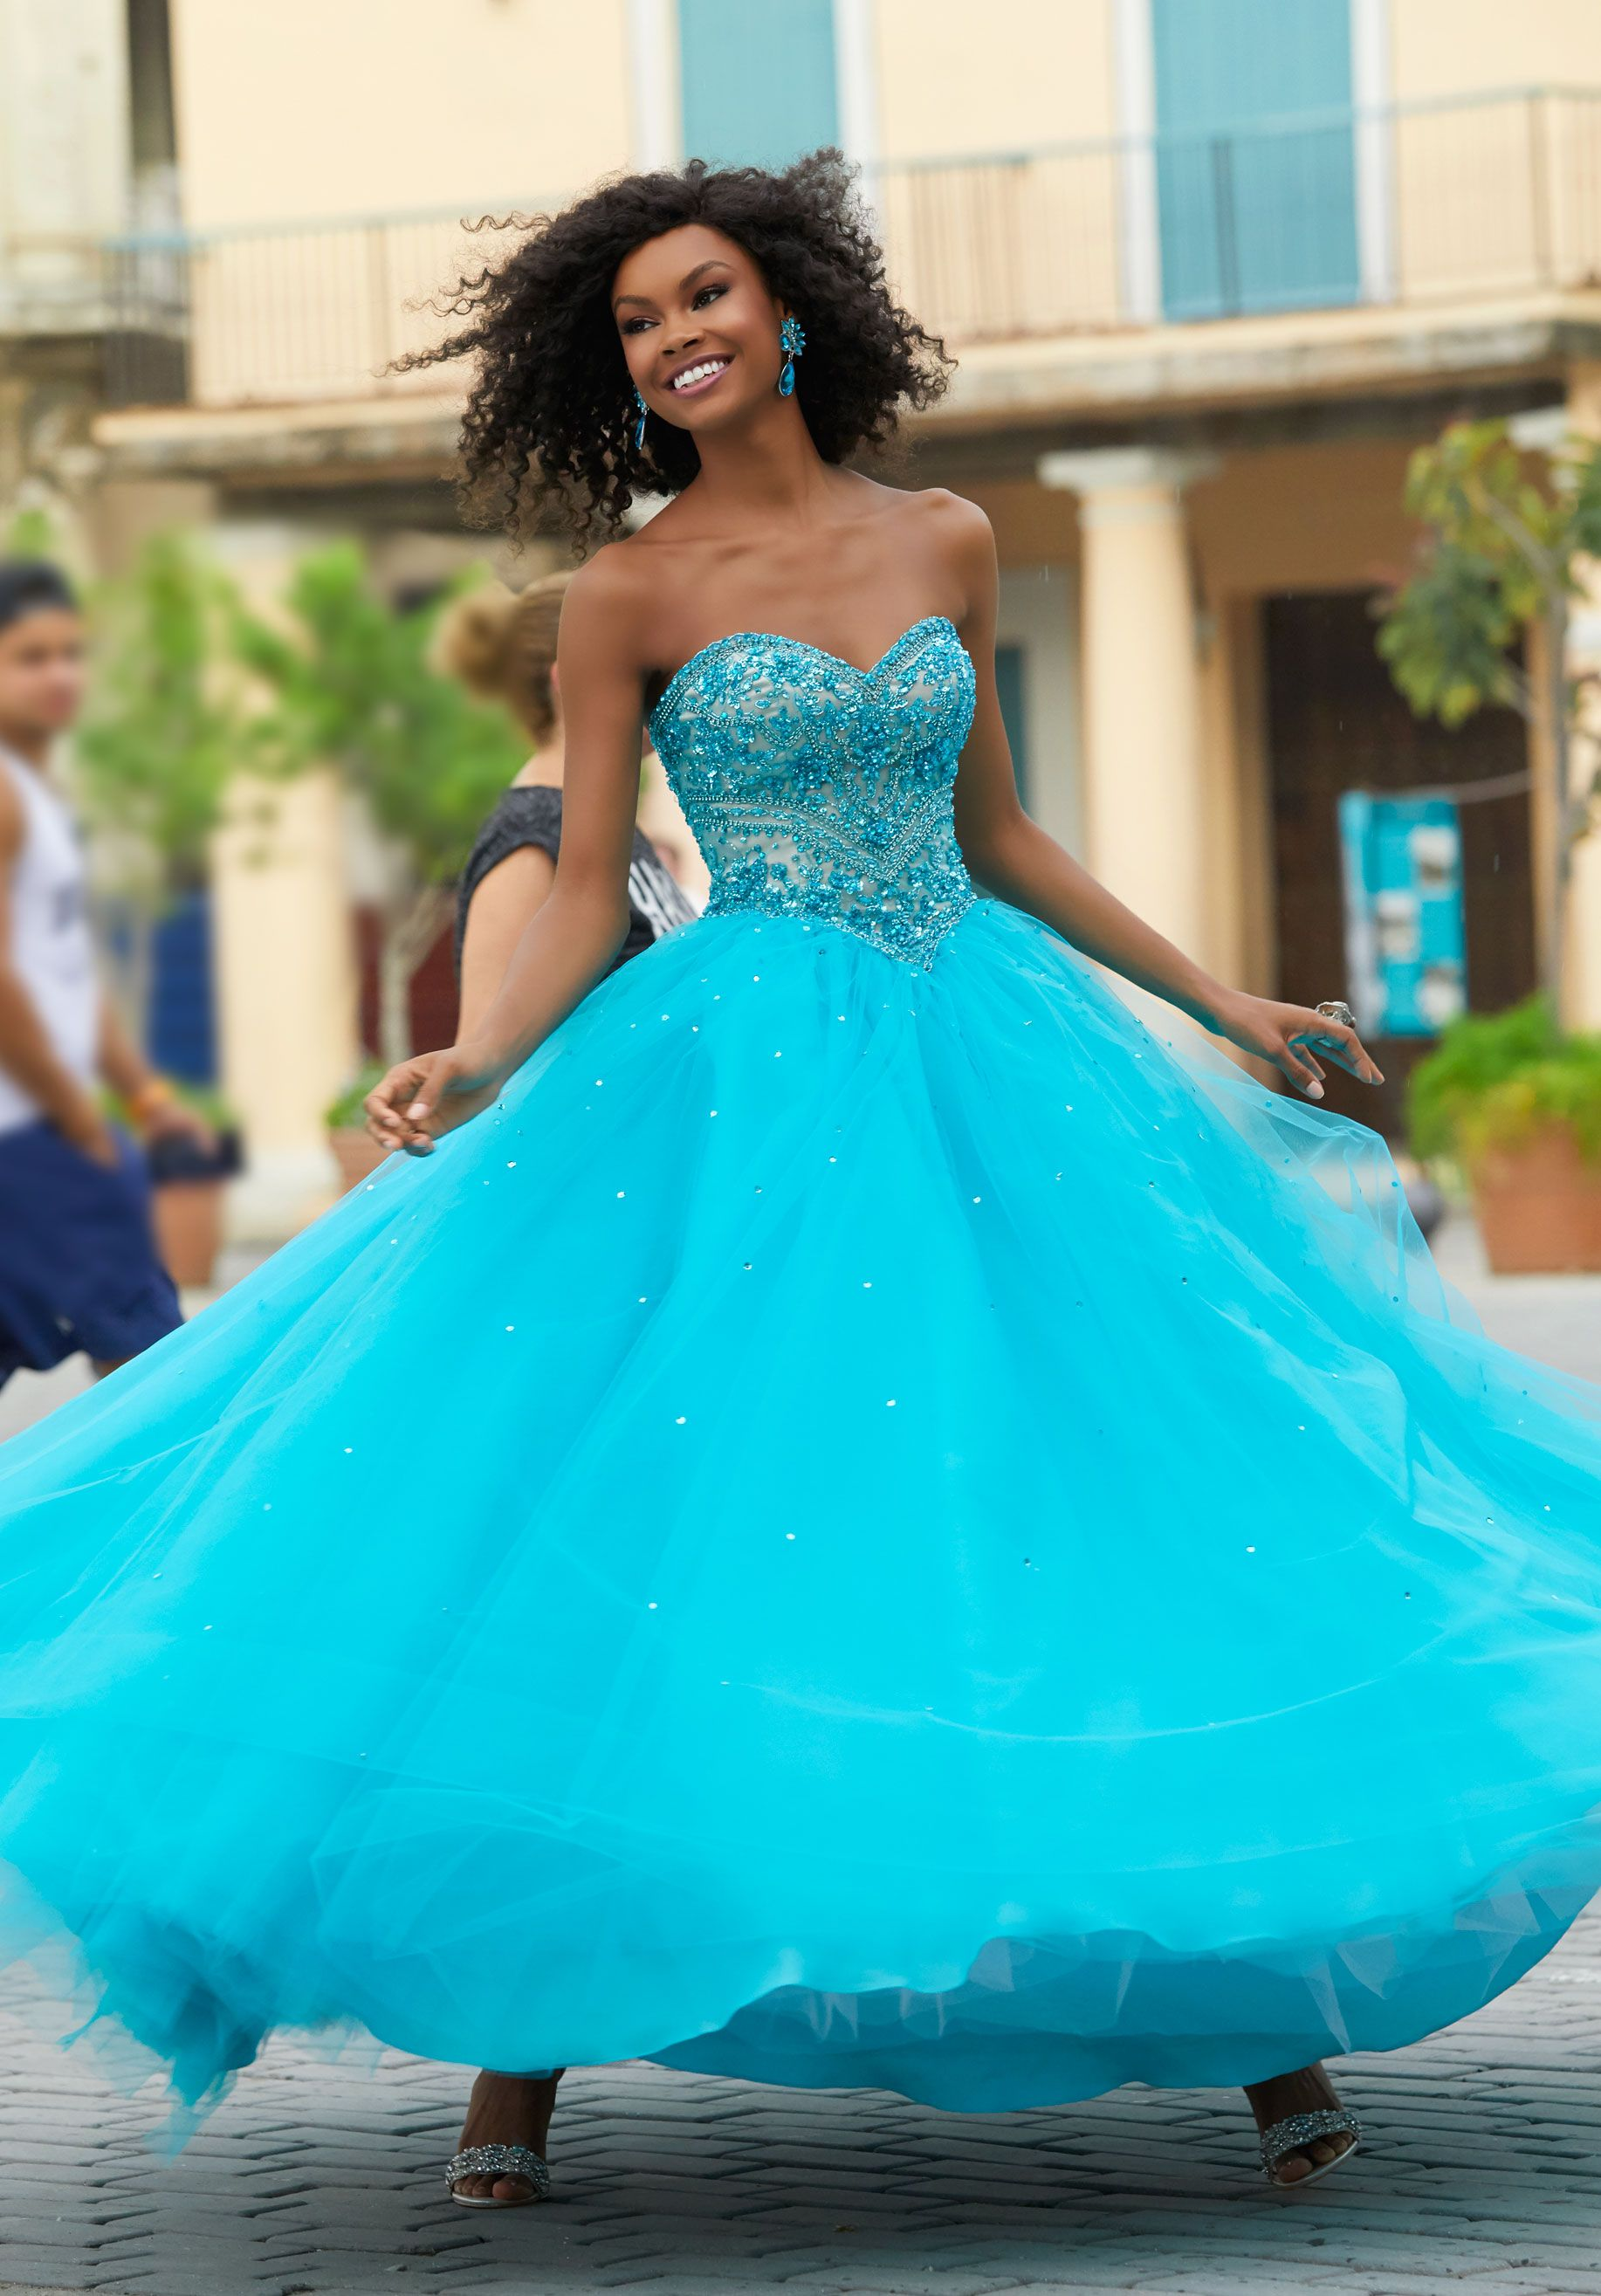 Classic prom ballgown featuring a beaded sweetheart bodice with full